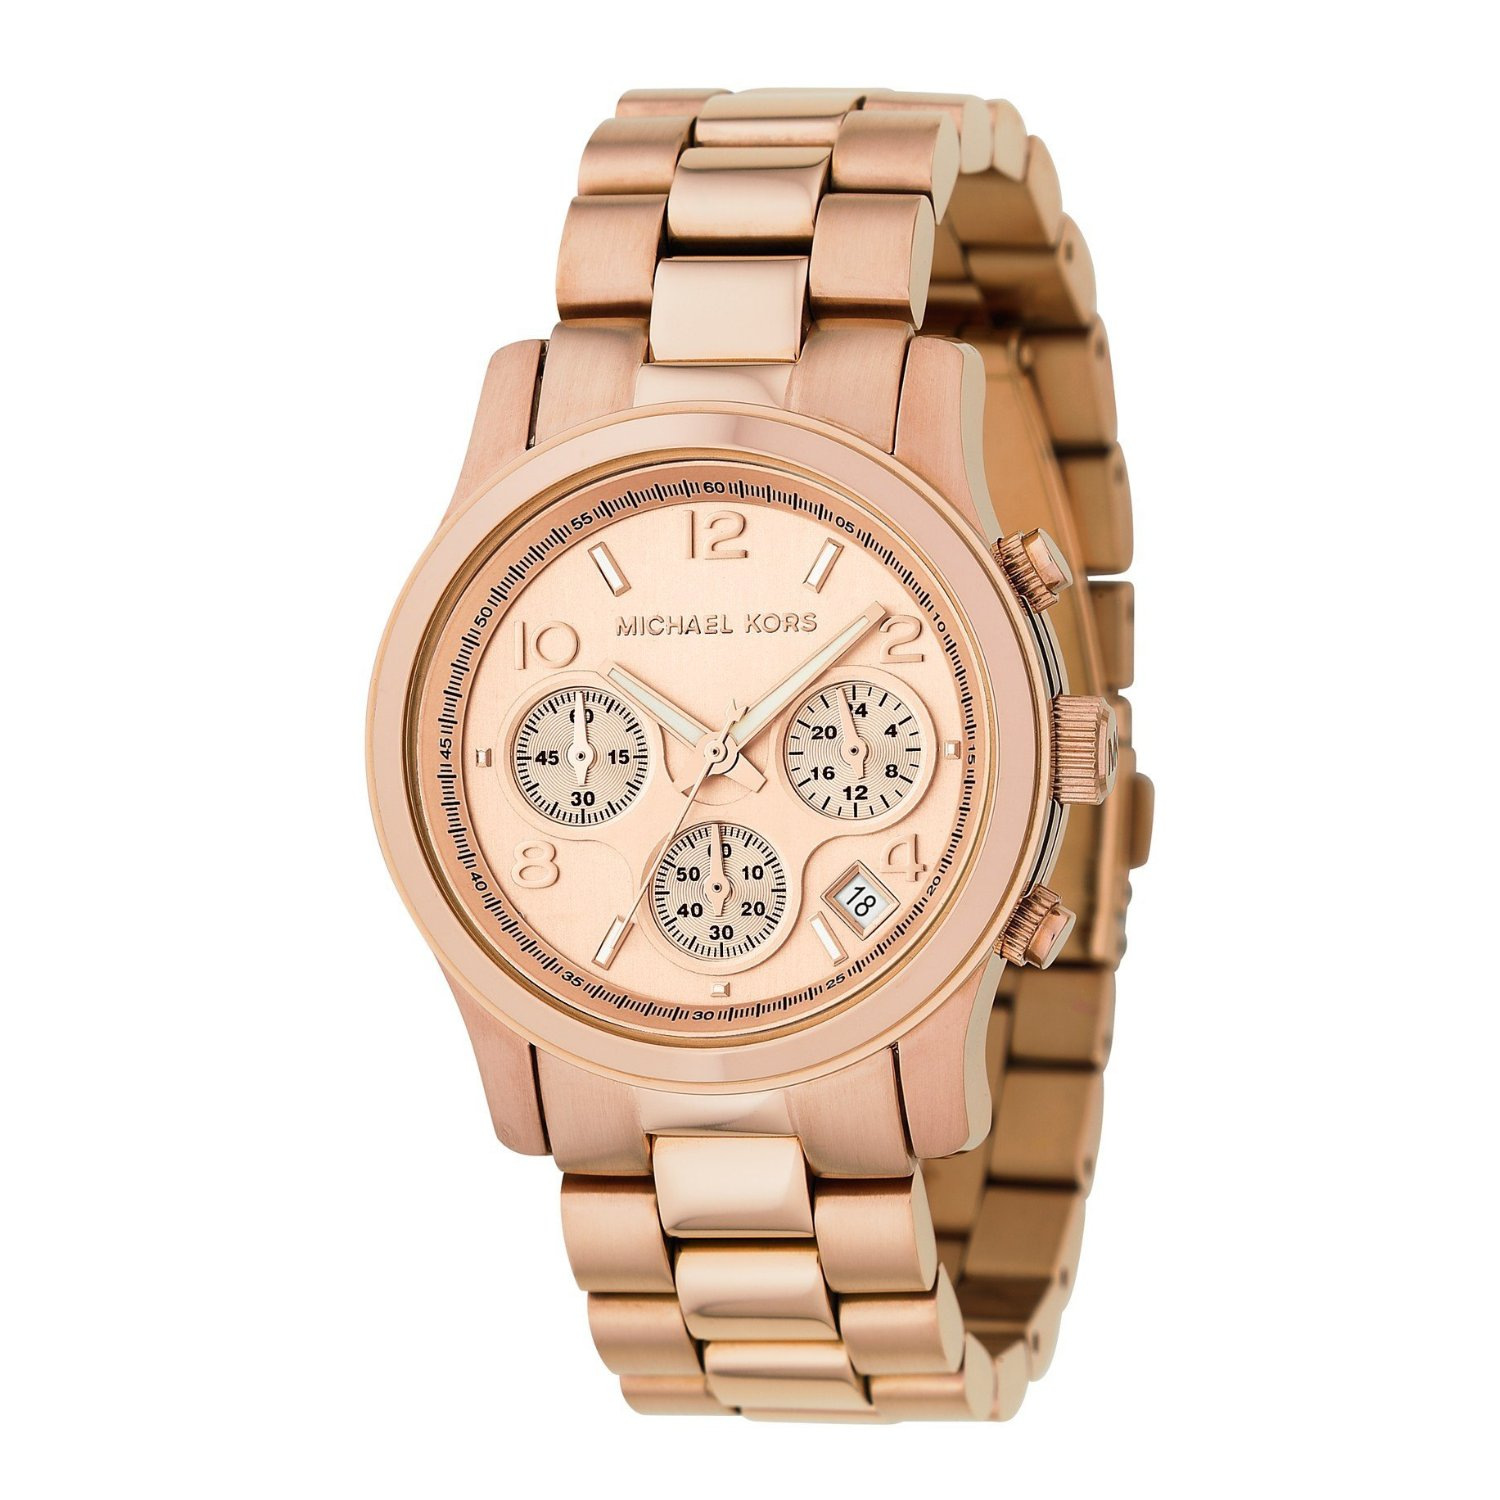 michael kors watches women rose gold plated bracelet